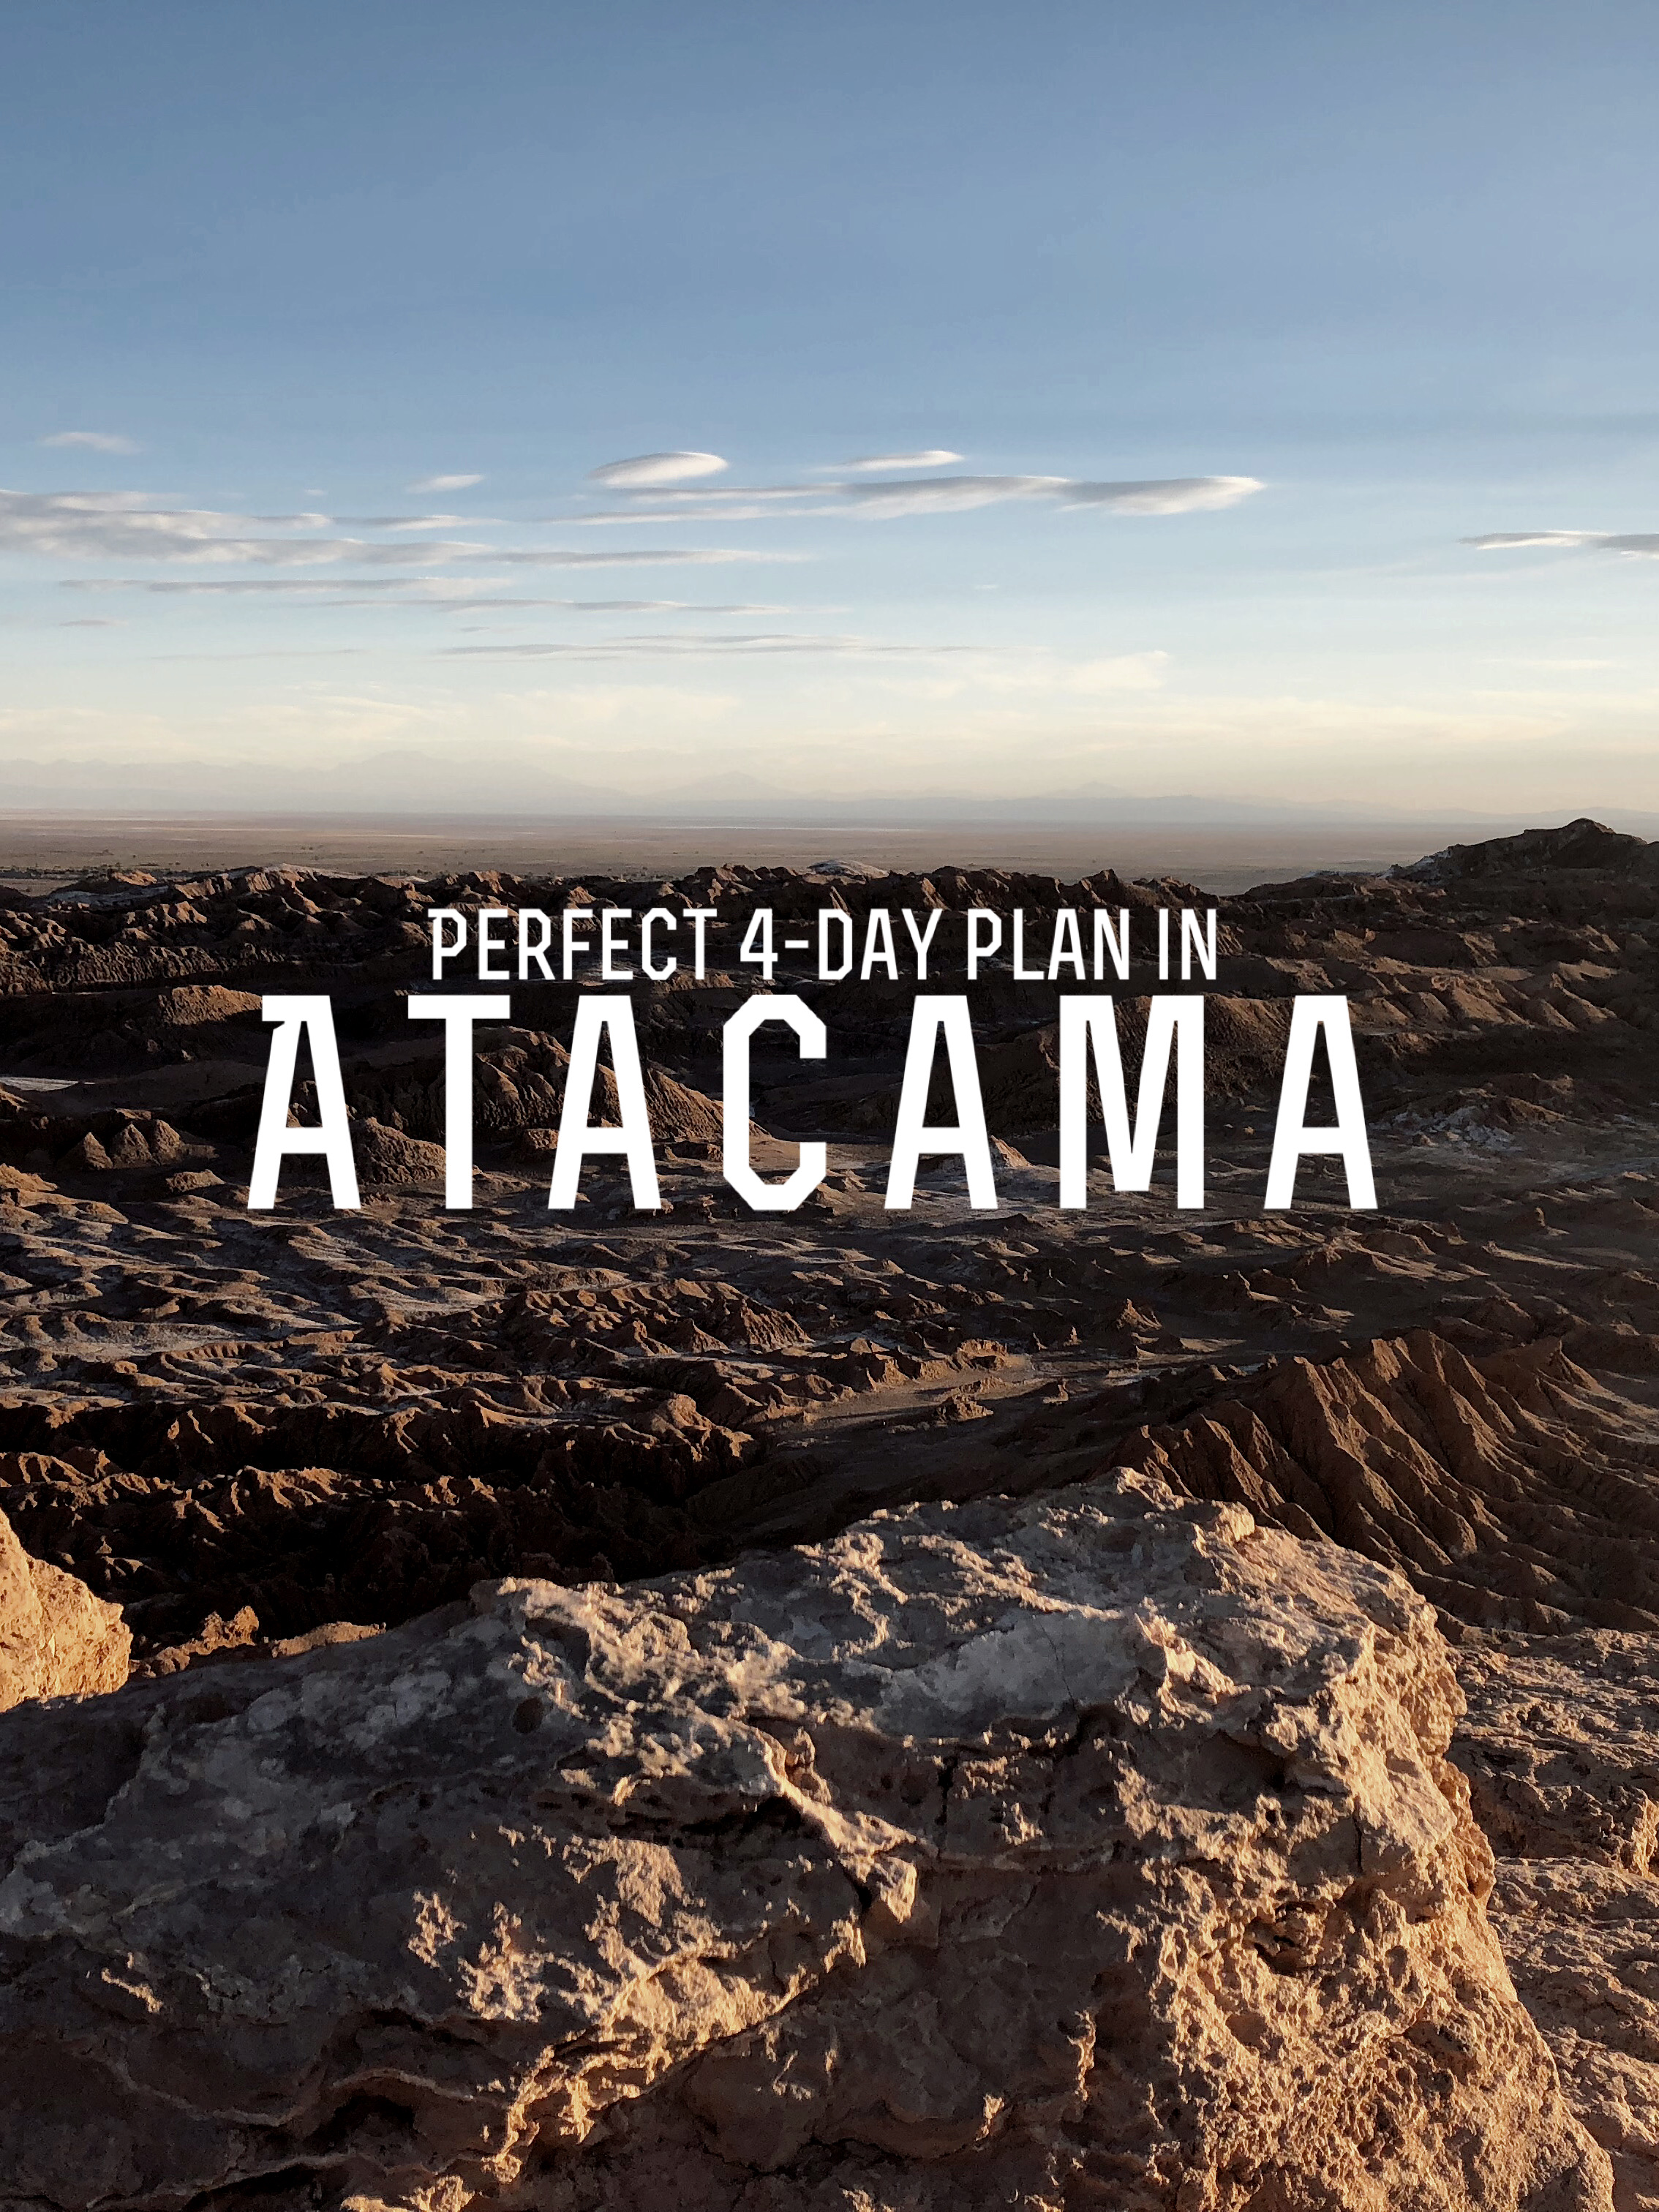 A Perfect 4-day Itinerary for the Atacama